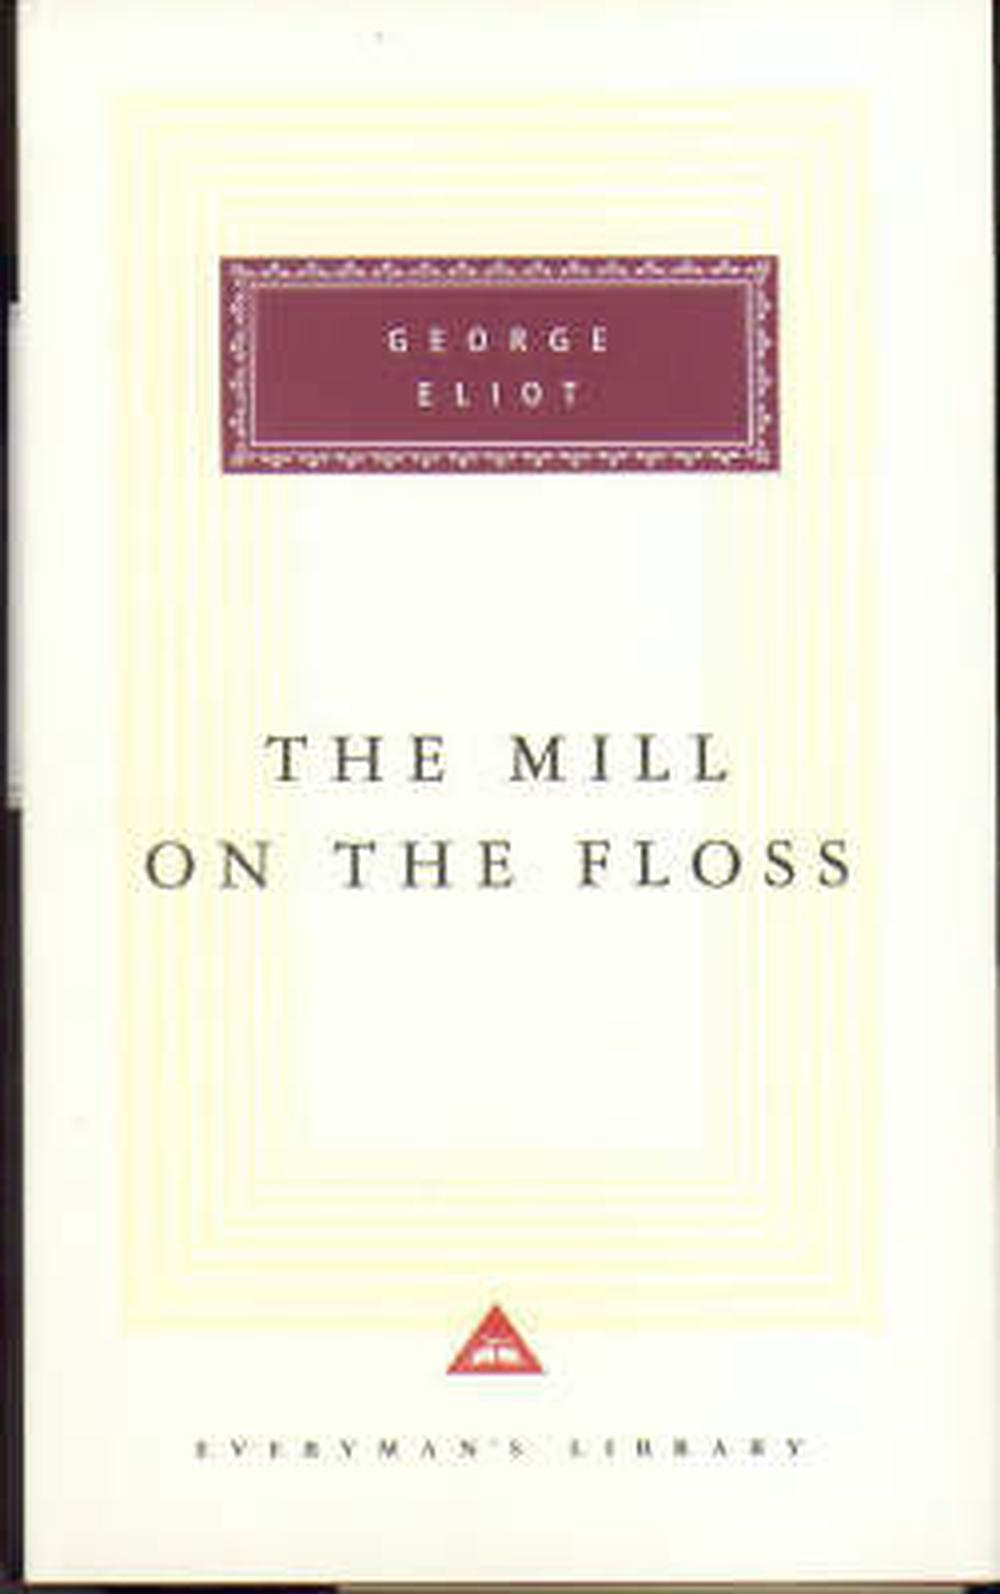 an analysis of the mill on the floss by george eliot